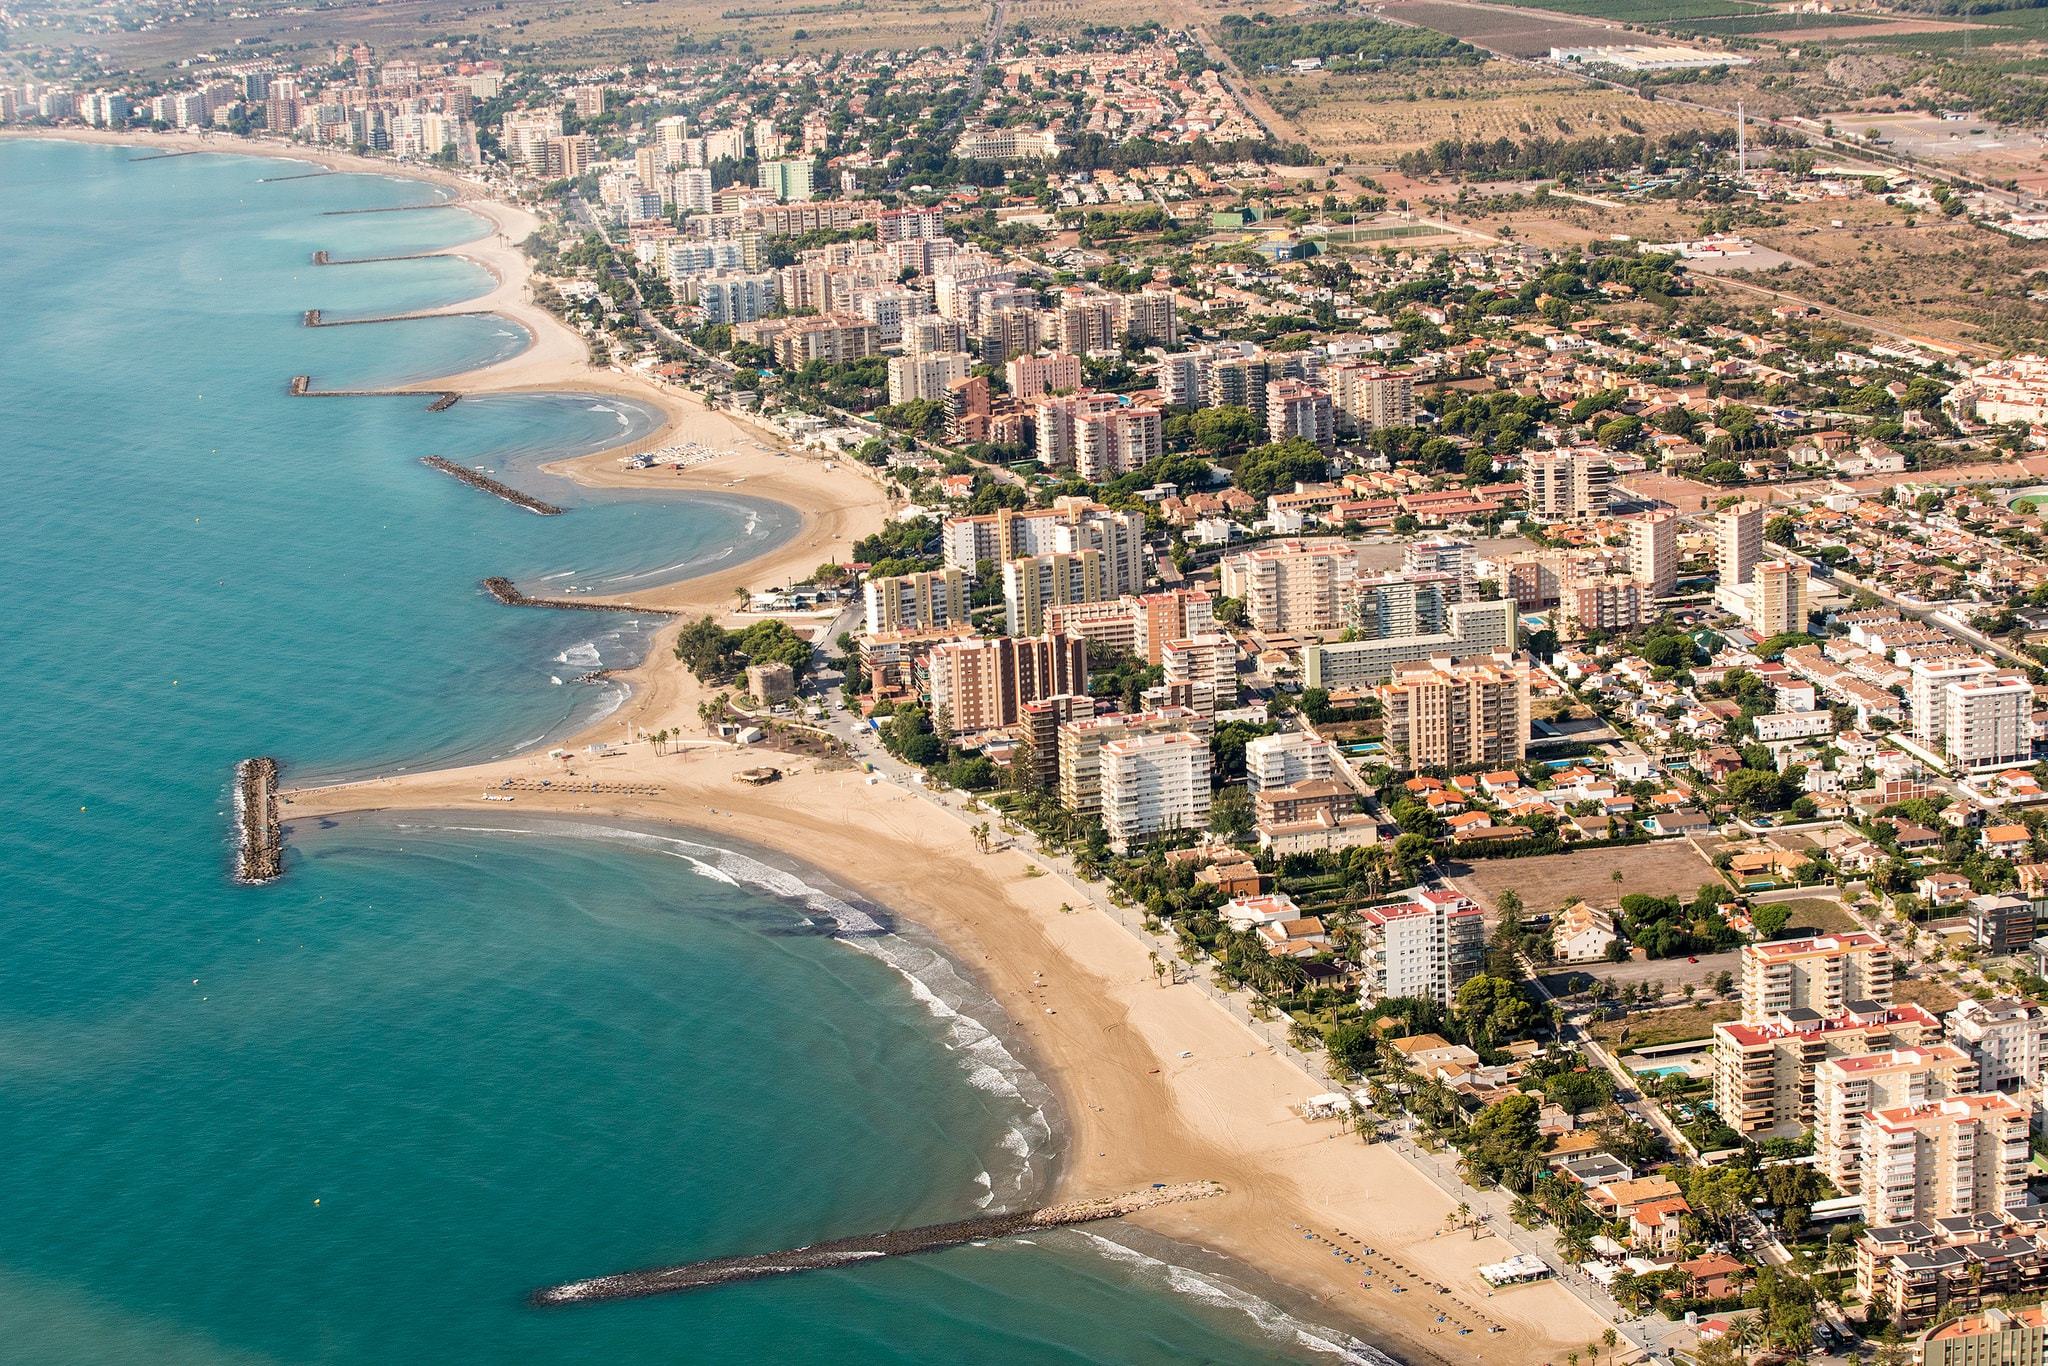 The Top 10 Things To See and Do in Benicassim, Spain